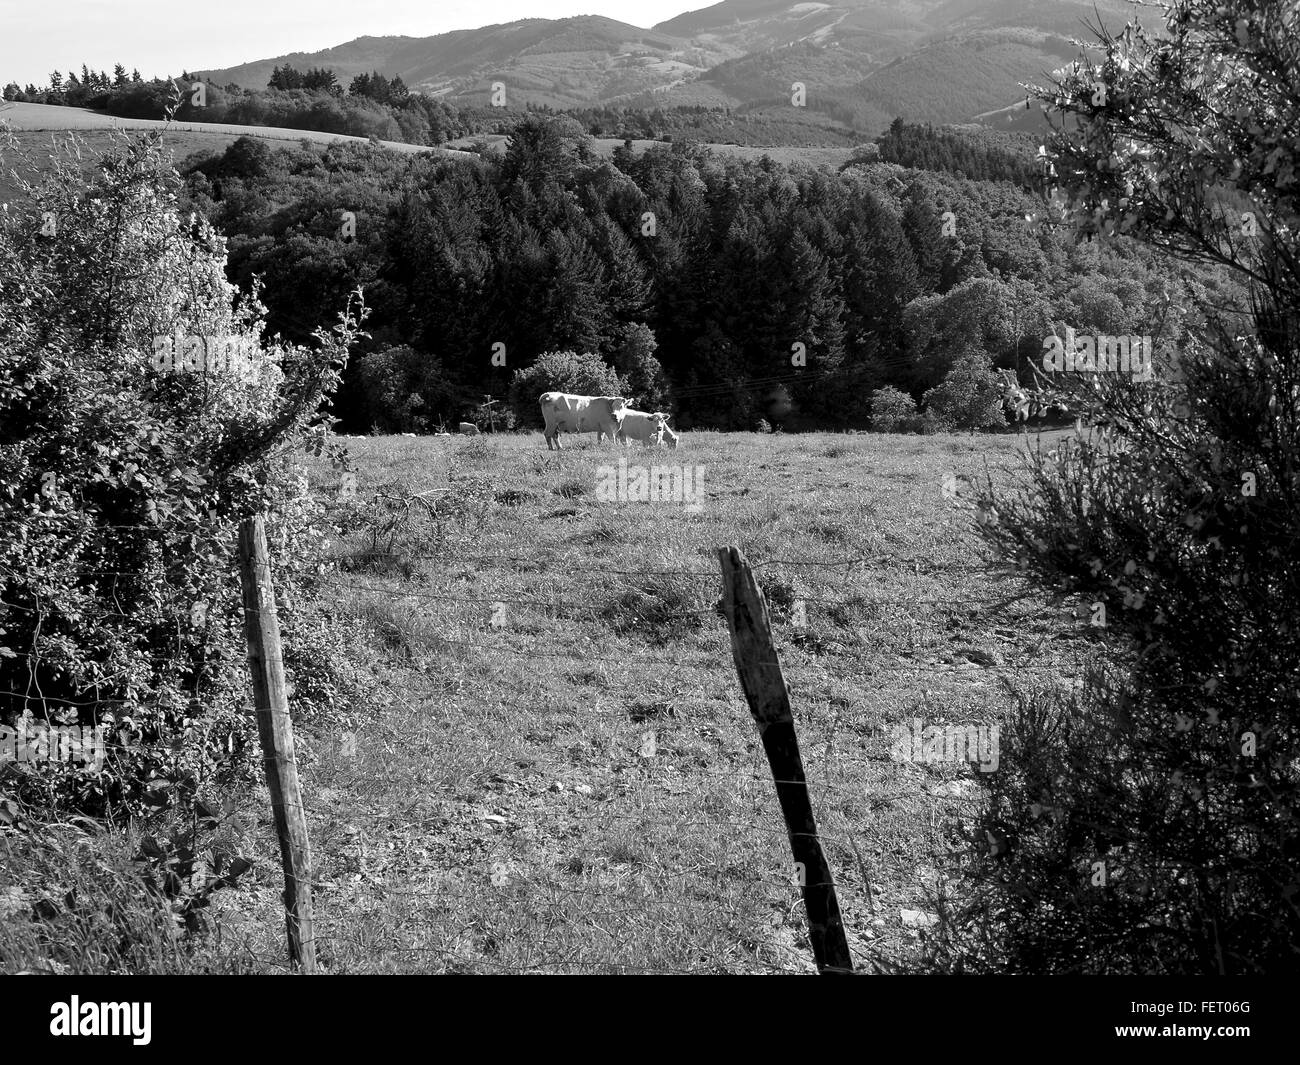 Cows In Farm Field With Barbed Wire Fence - Stock Image